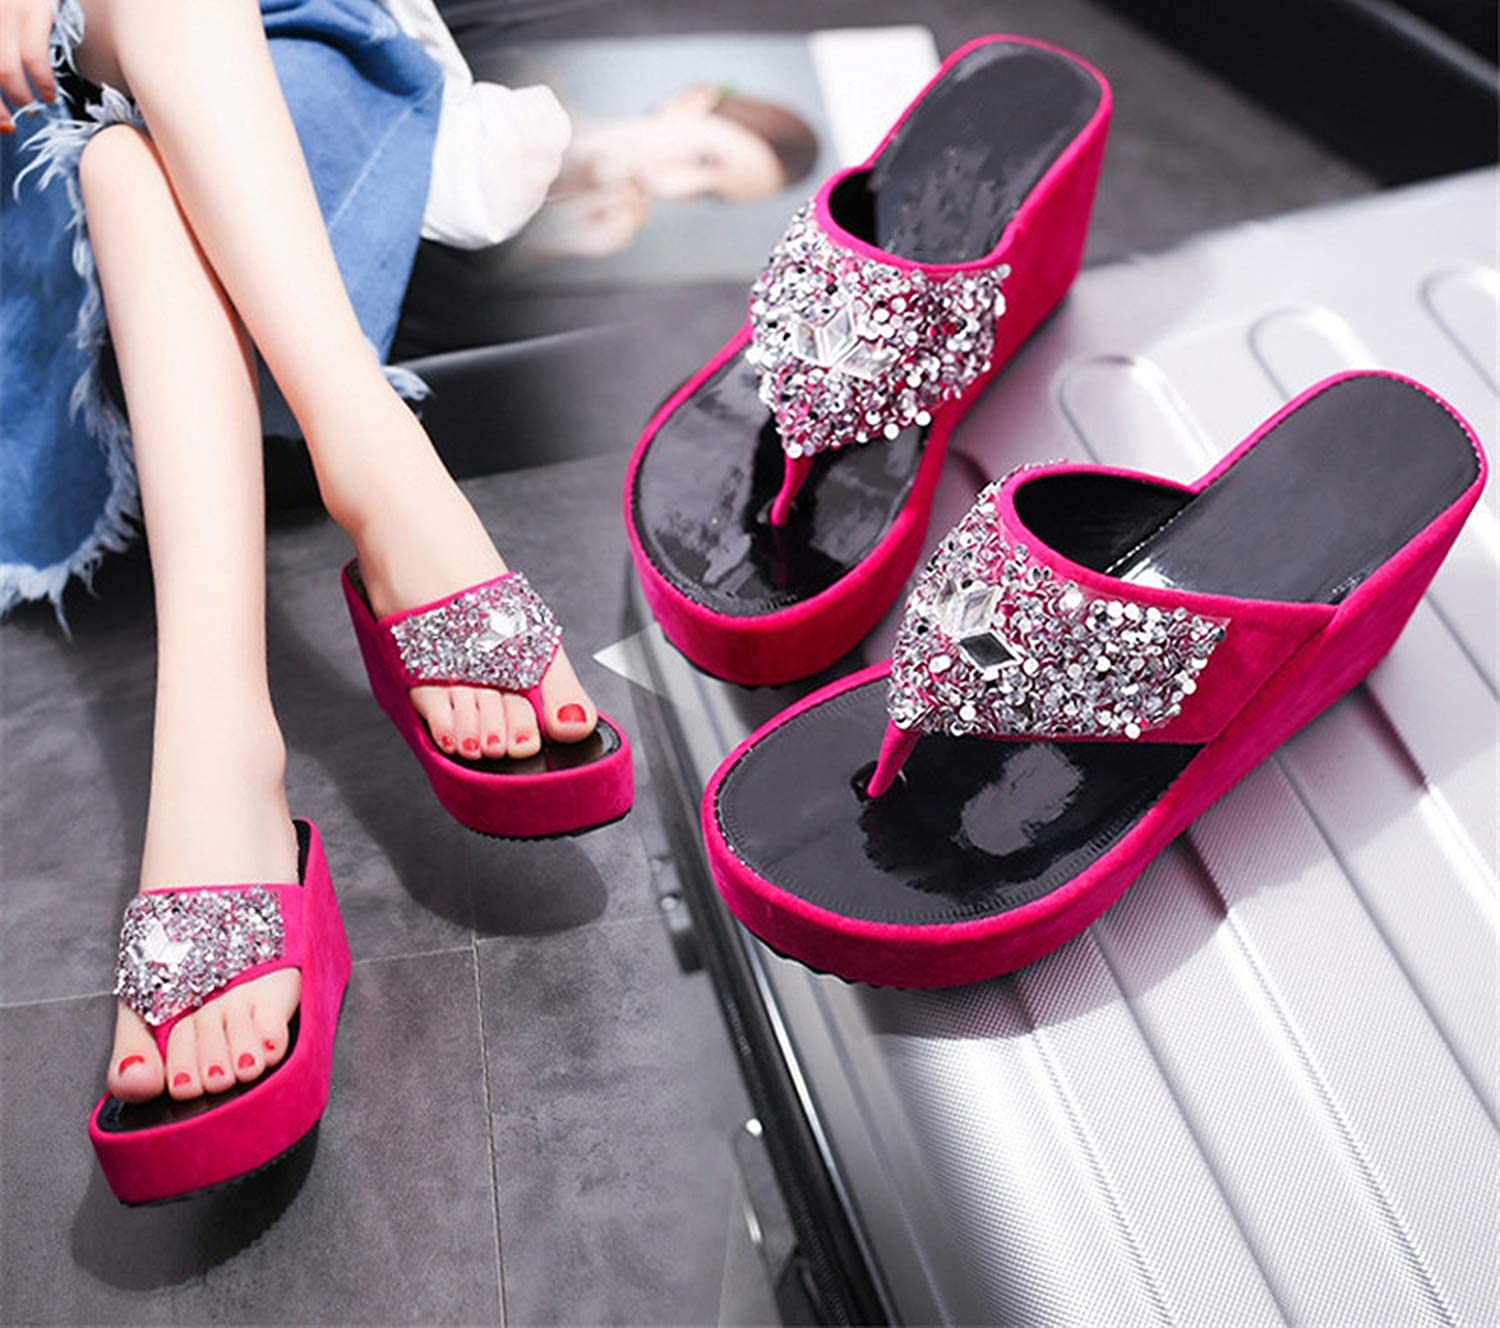 ulucky wait Womens flip-Flops with Thick-Soled Platform Shoes Sequins Slippers Outdoor Beach Slippery Foot Drag Sandals